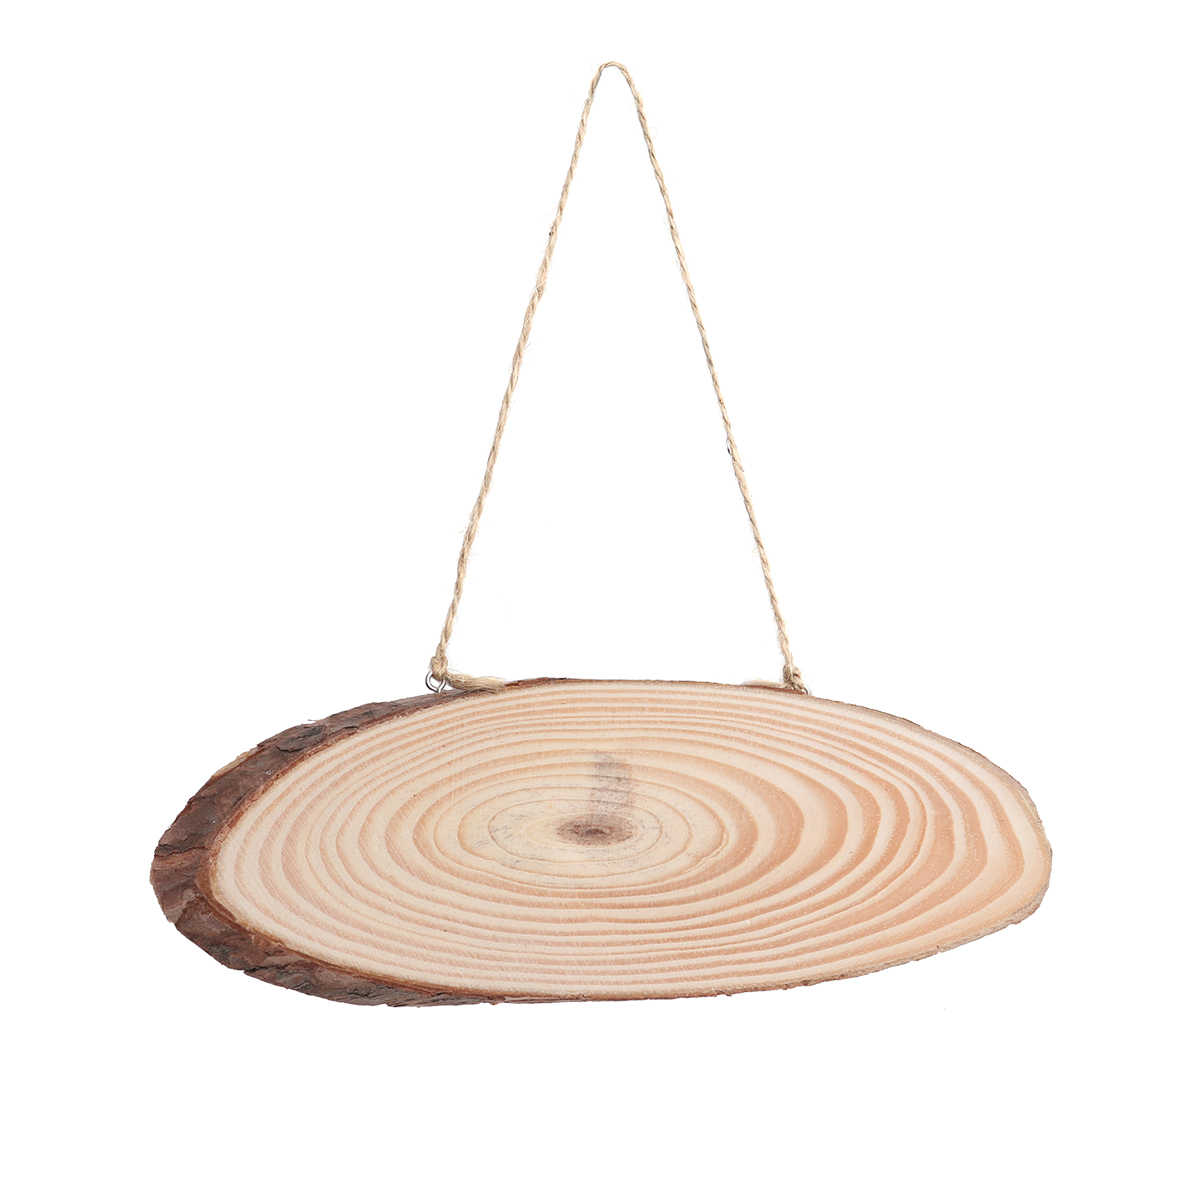 Diy Wood Crafts 22x7cm Oval Blank Wooden Disc Tree Log Slice Plaques With 2 Hooks And Rope For Diy Decoration Crafts Projects